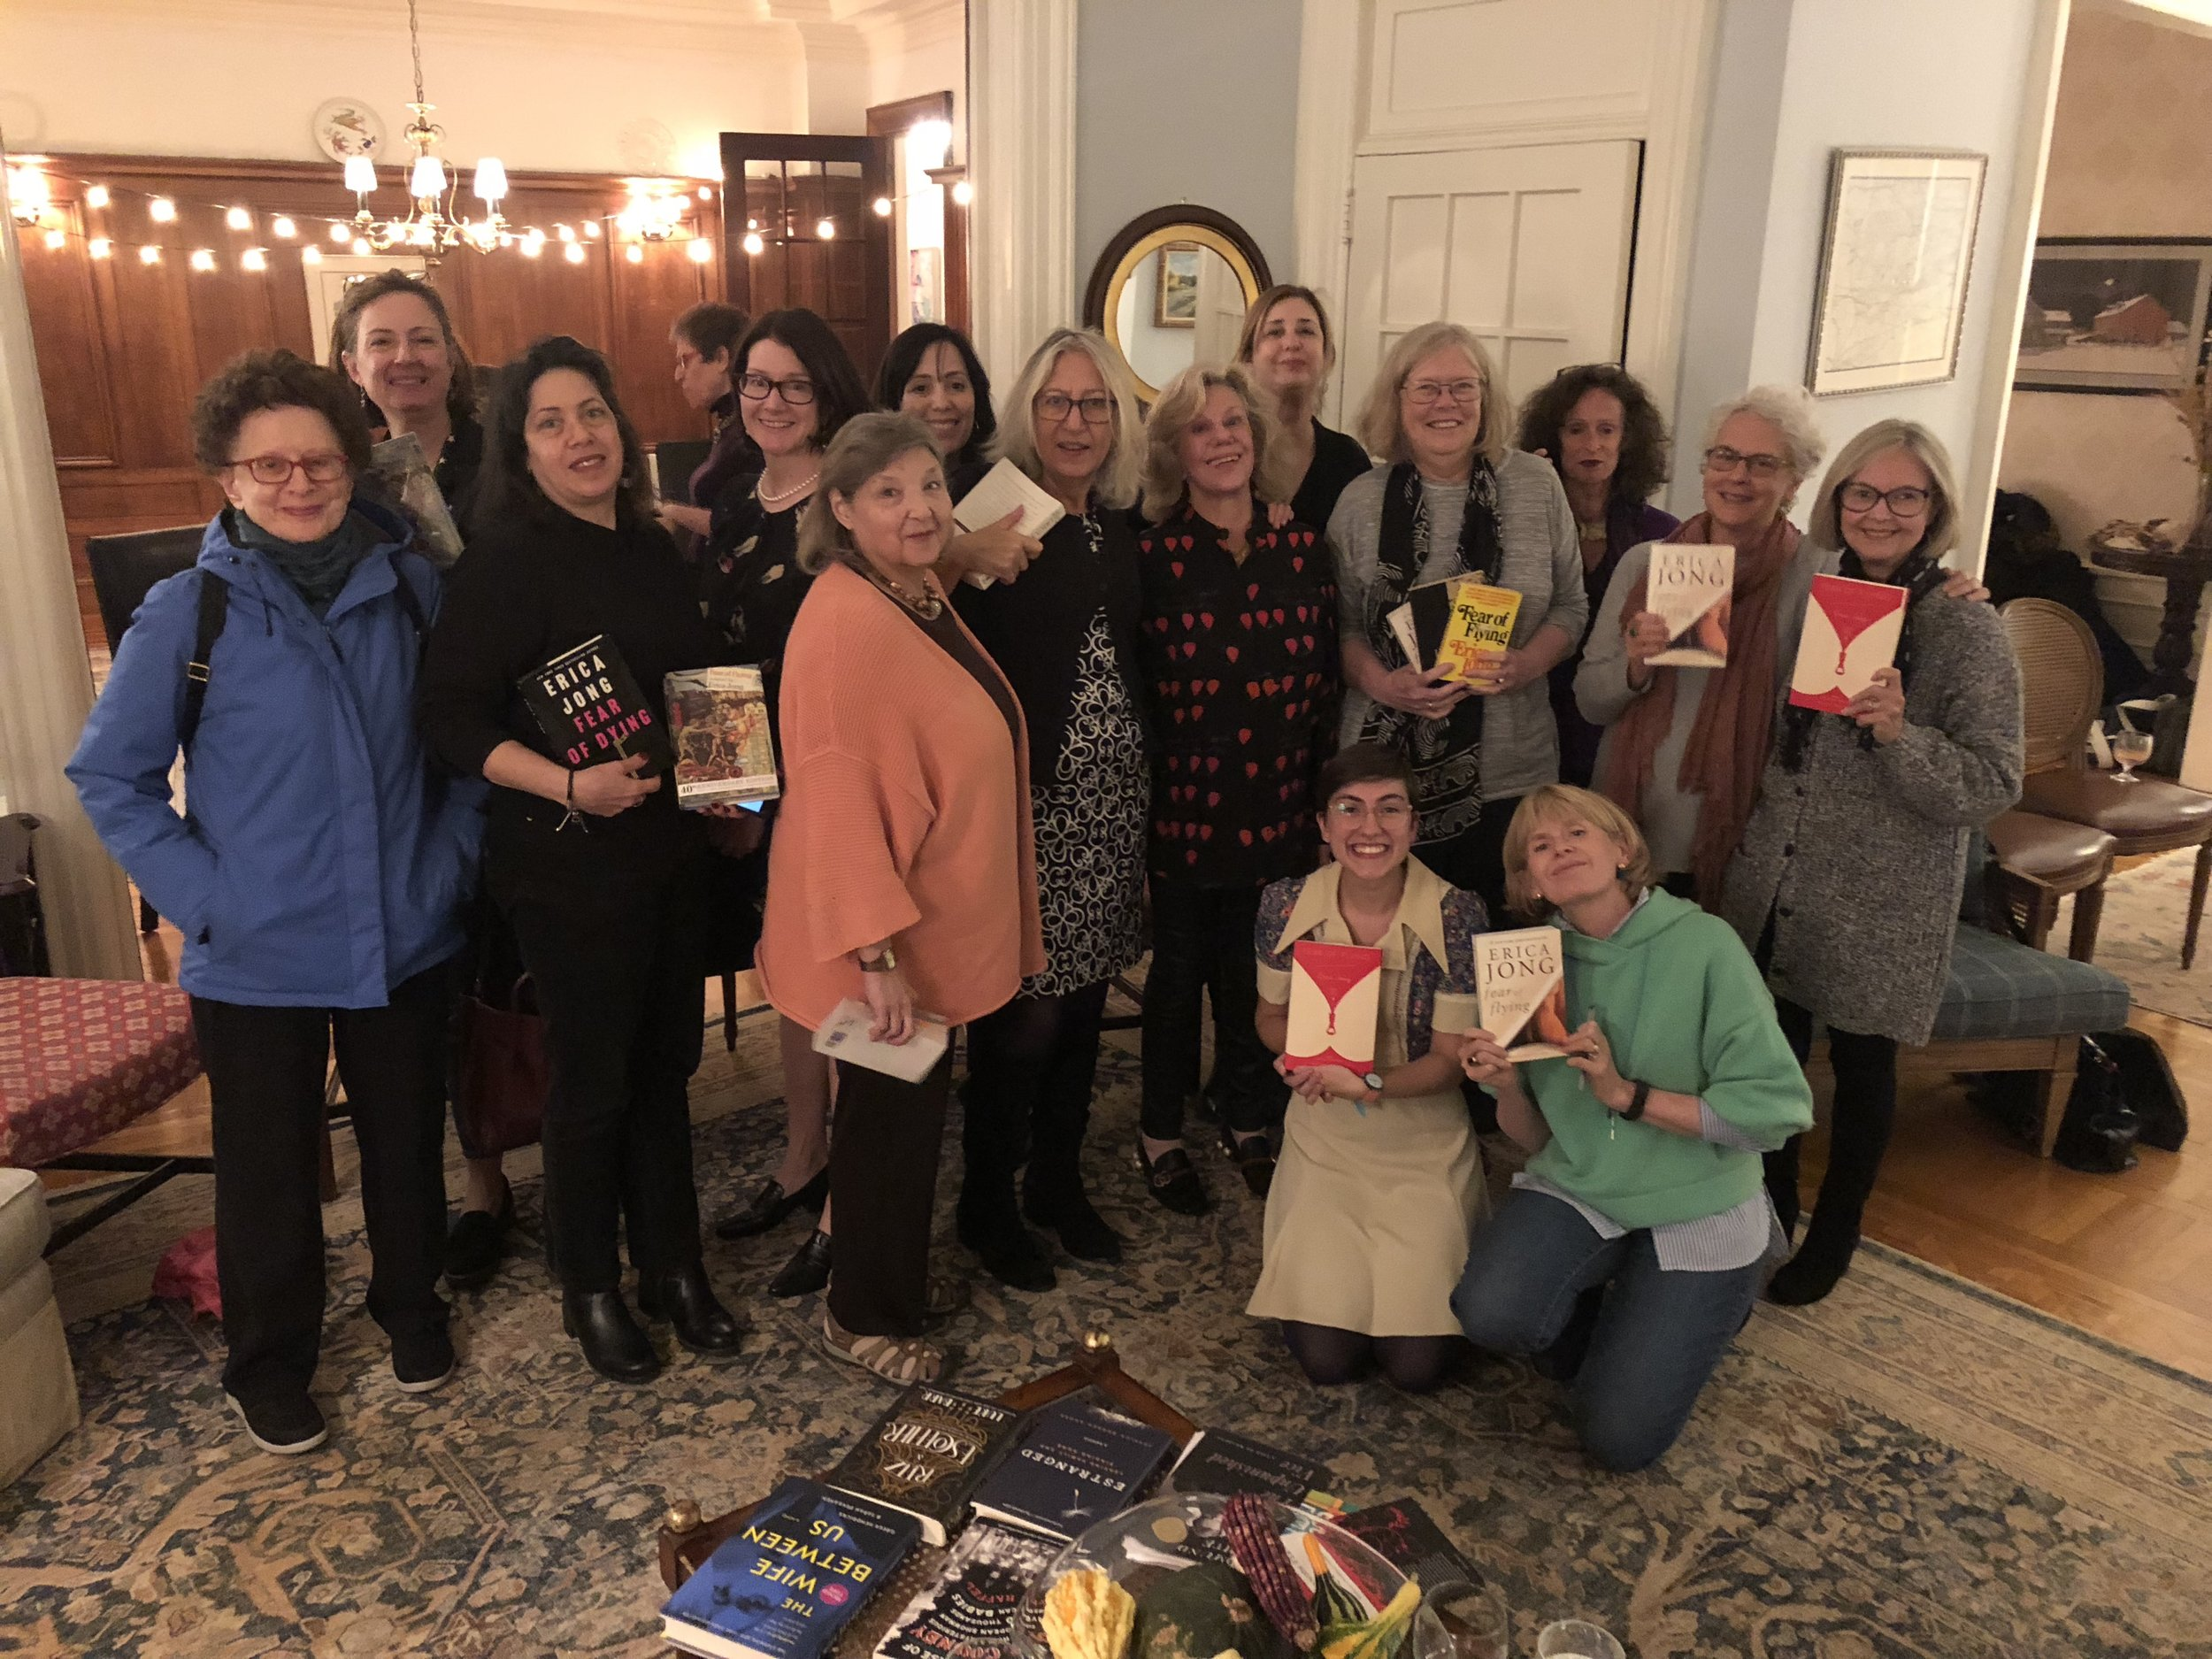 Erica Jong at her book group for FEAR OF FLYING.